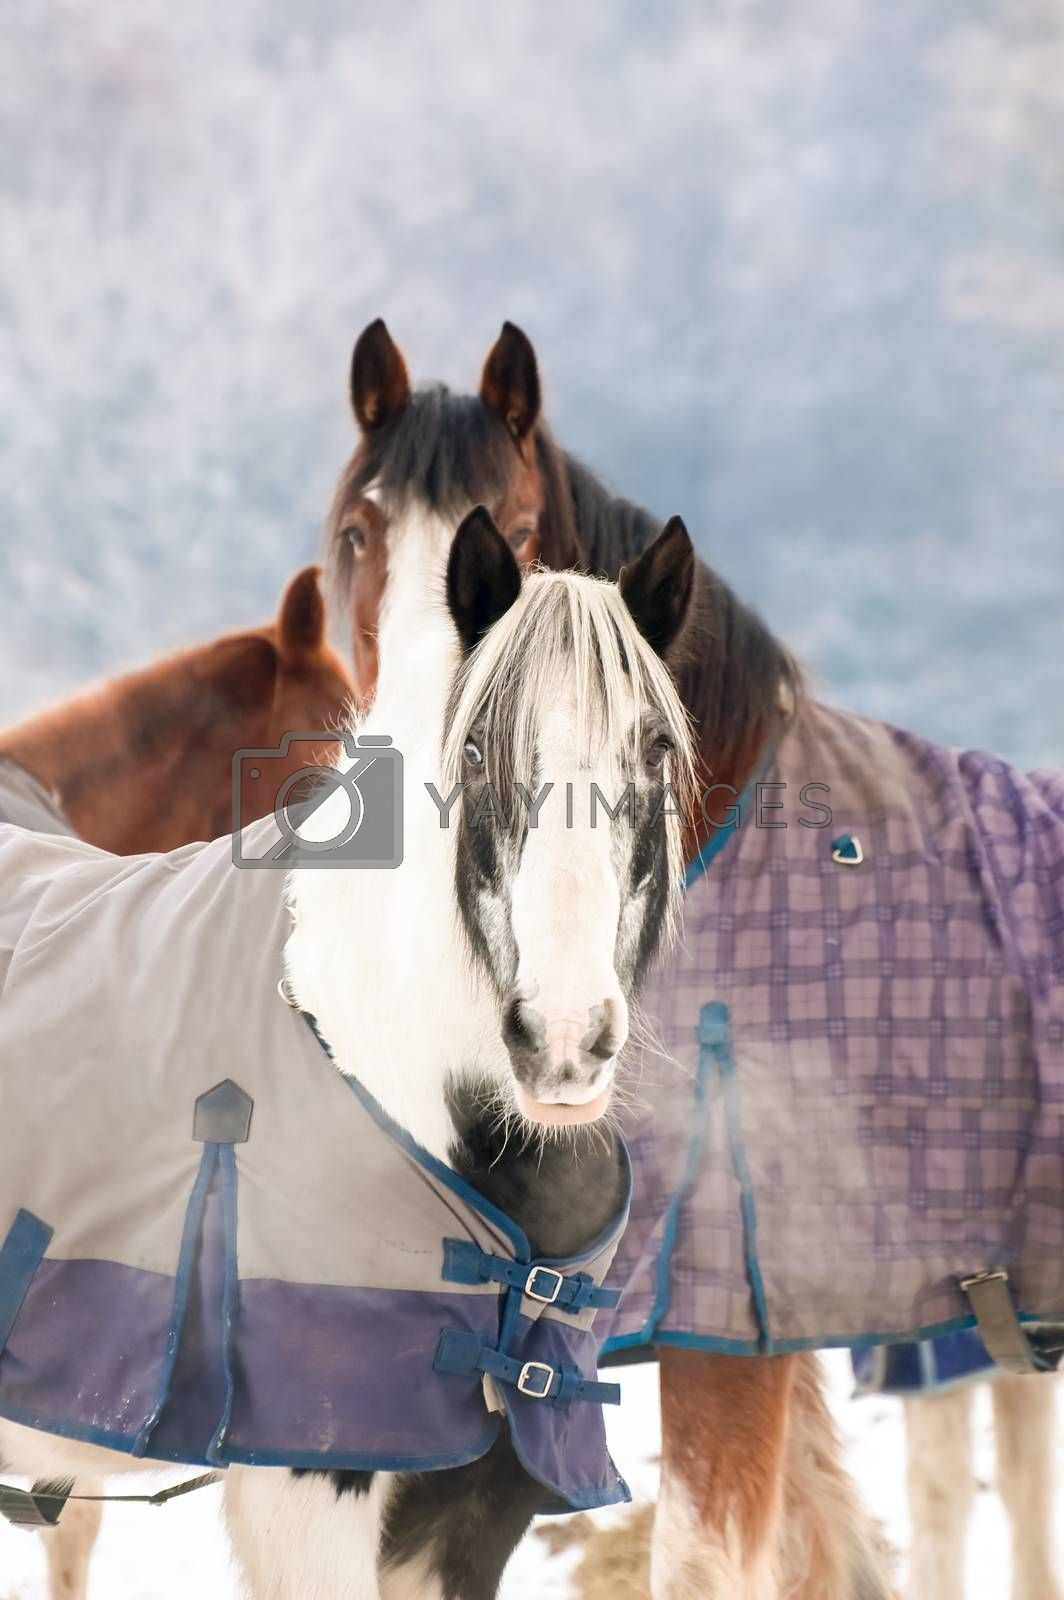 Royalty free image of winter horses by nelsonart